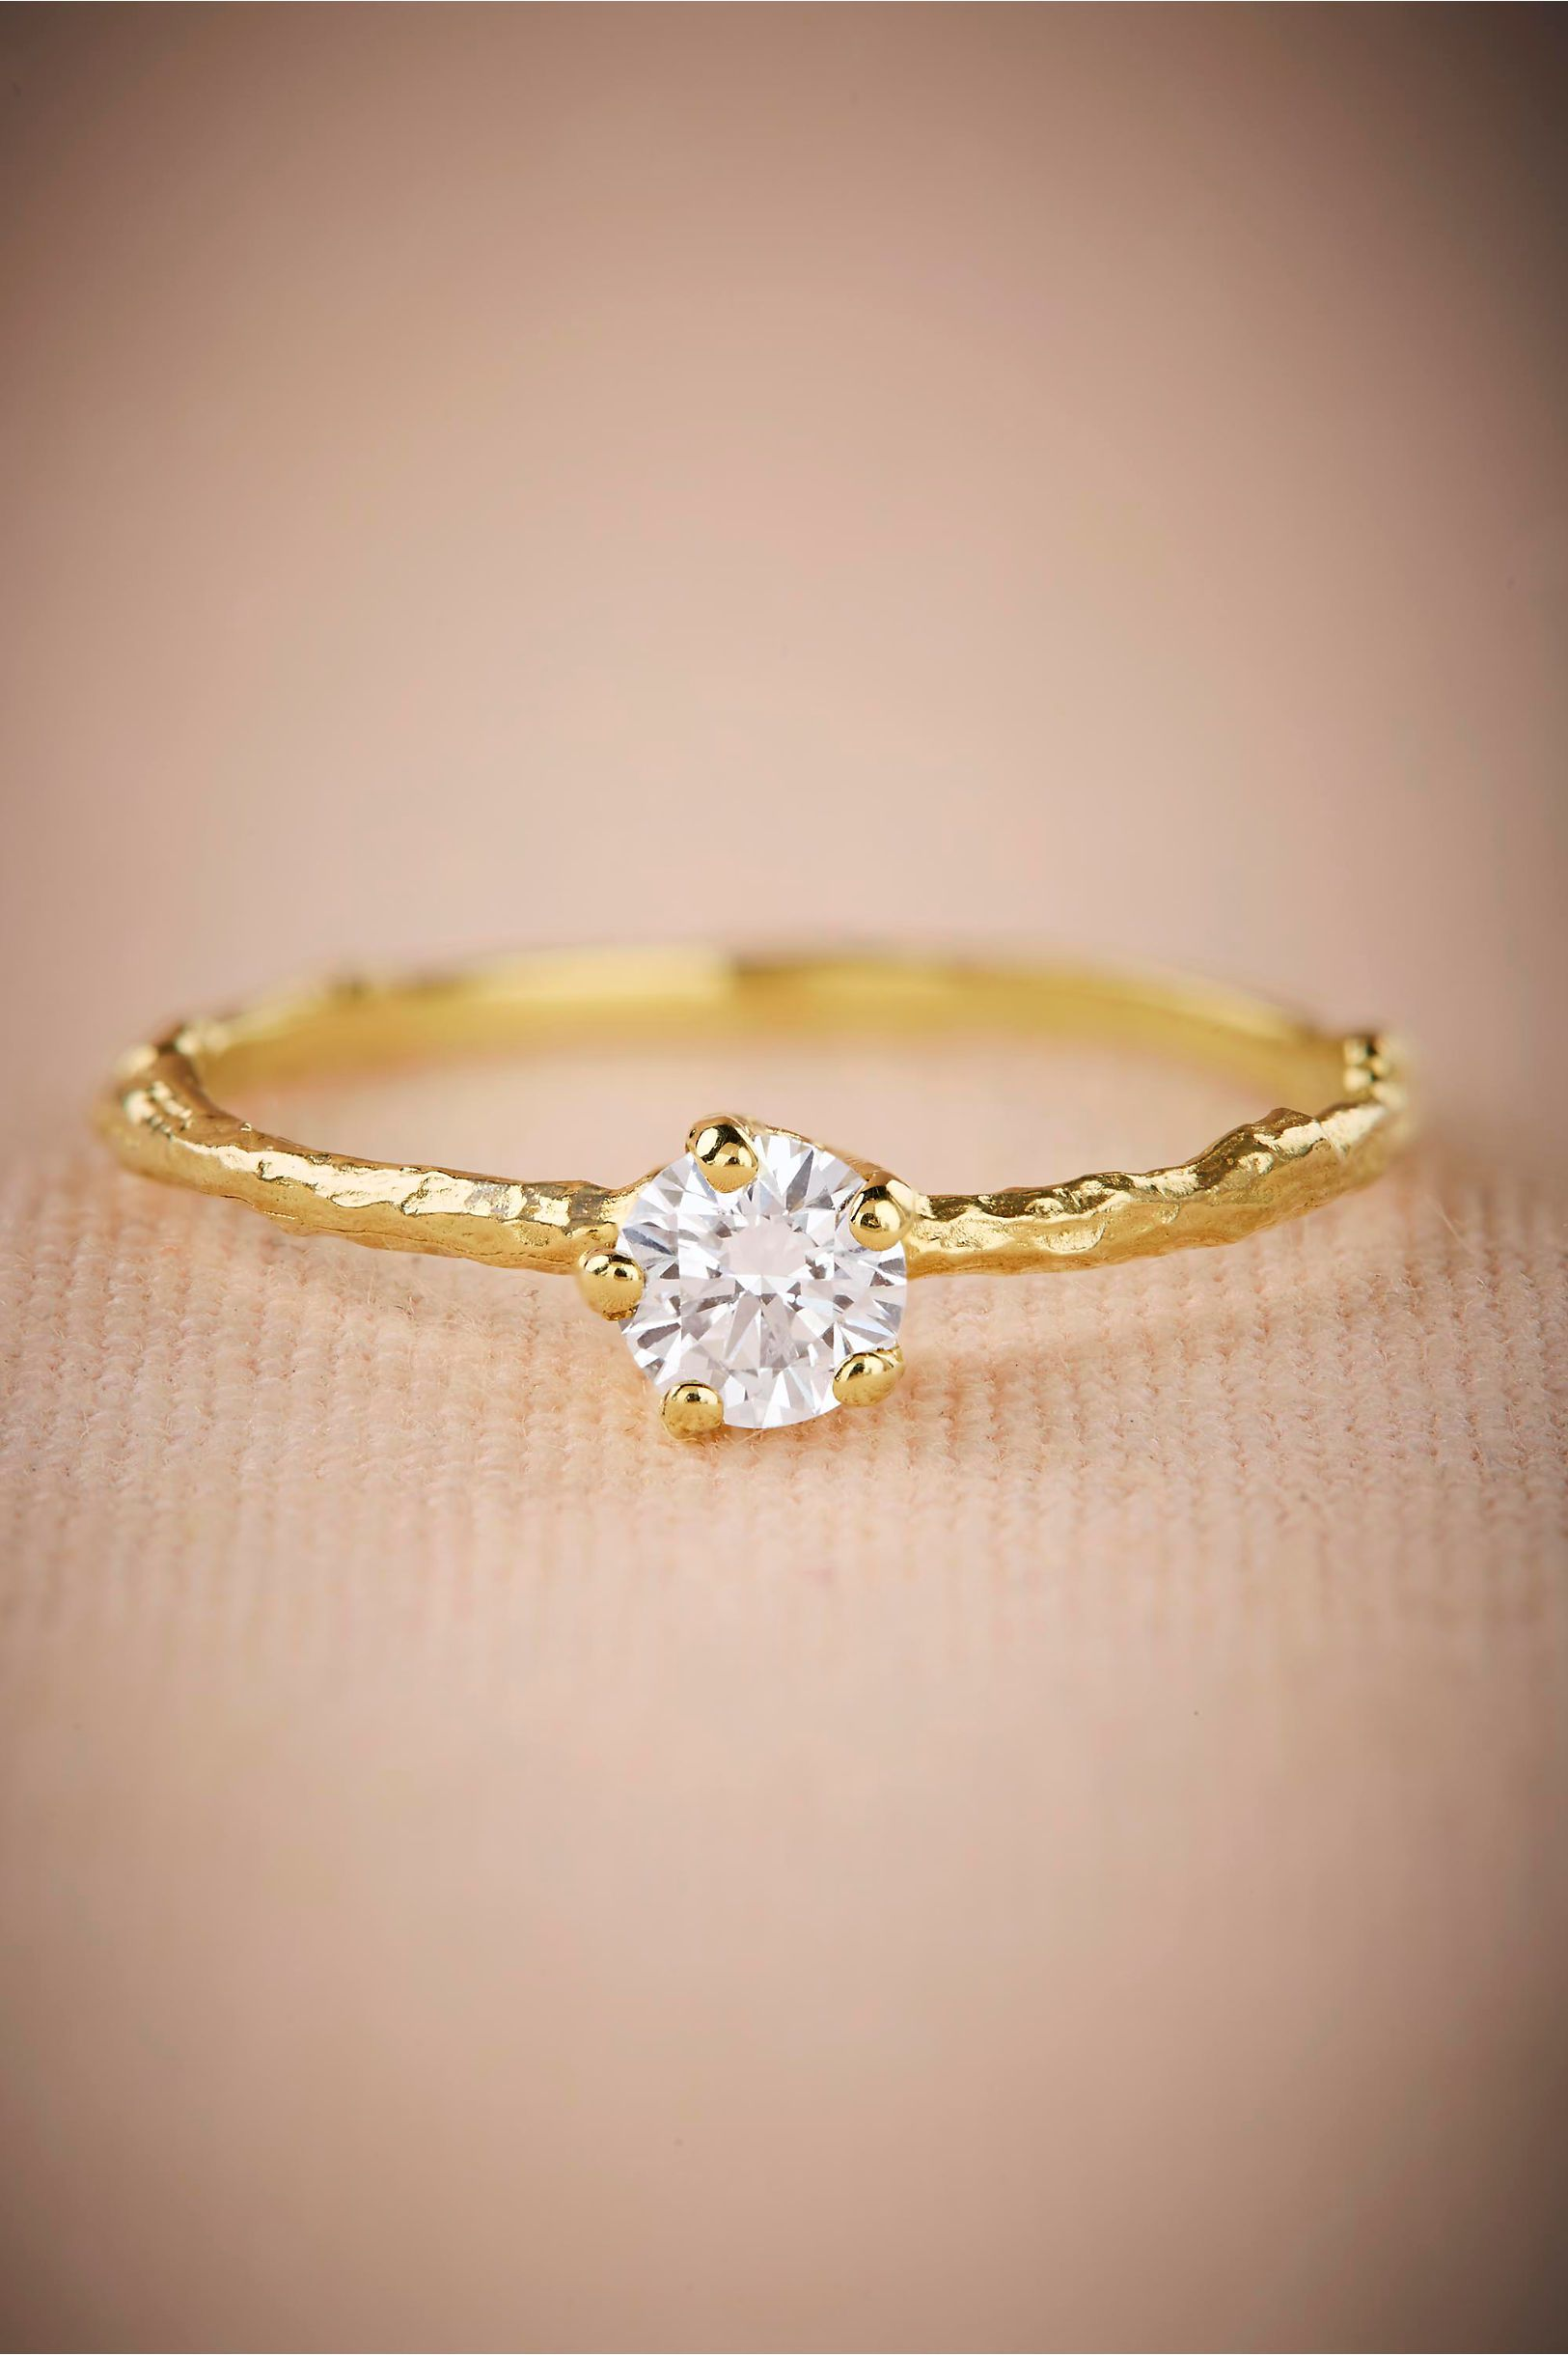 BHLDN Branchette Diamond Ring in Shoes Accessories Jewelry at